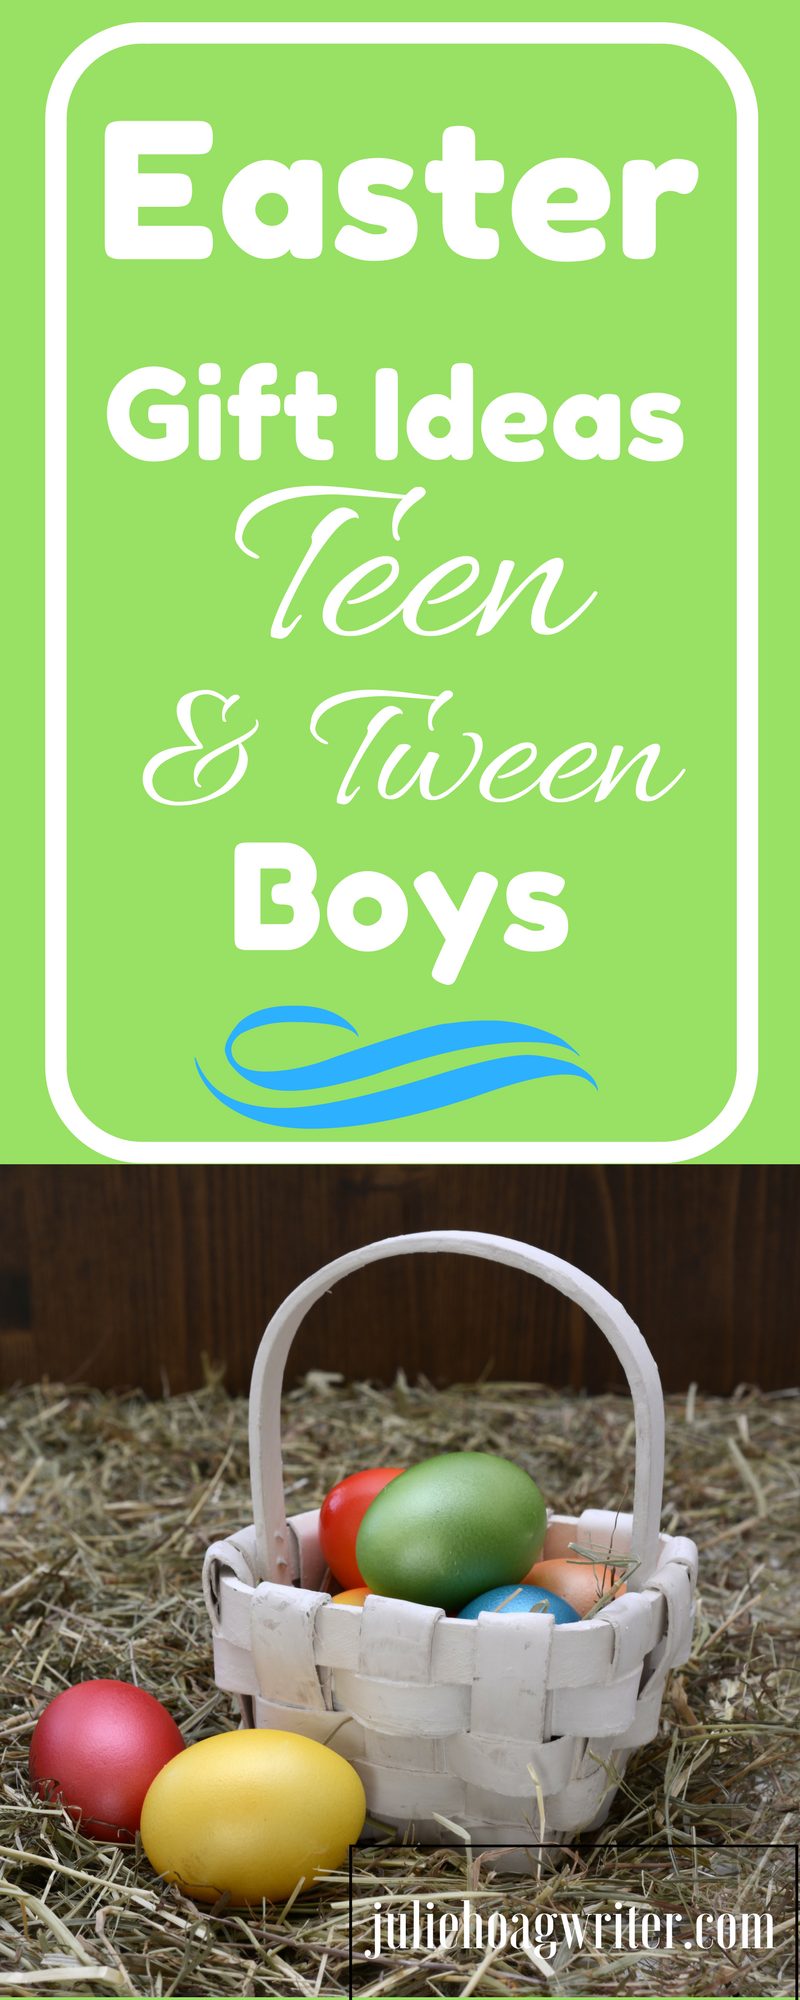 Easter gift ideas for teen and tween boys face light tween and easter gift ideas for teen and tween boys negle Image collections